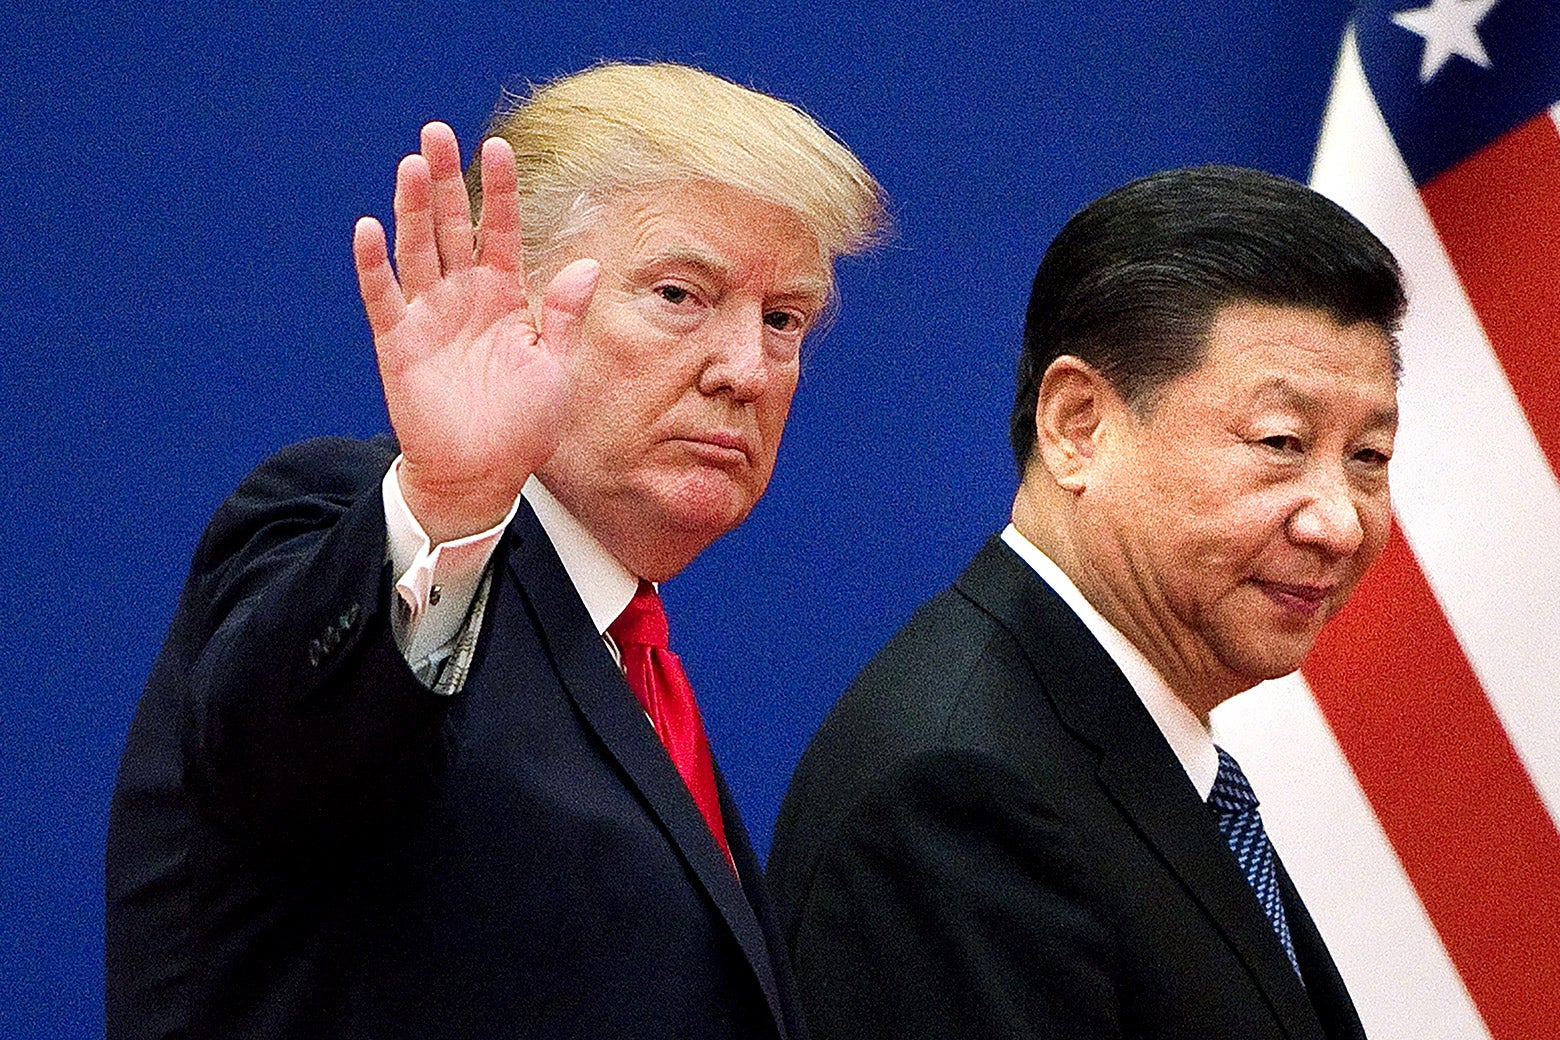 U.S. President Donald Trump and China's President Xi Jinping.